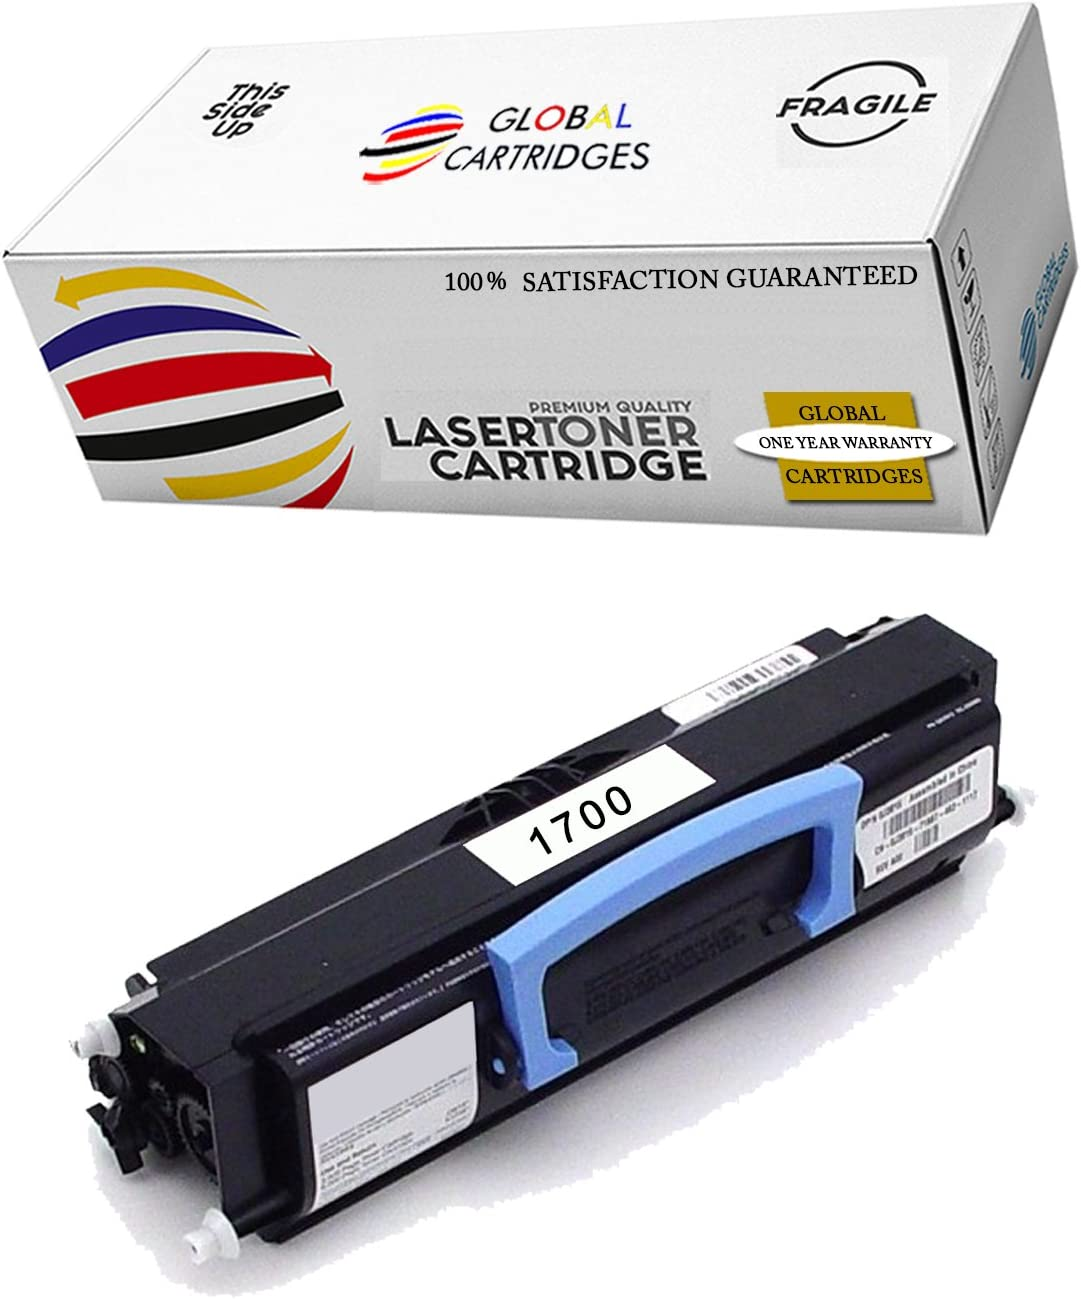 GLB Premium Quality Compatible Dell 1700, 1710, 310-7025, 310-5402, 310-7041 K3756 Black Toner Cartridge for Dell 1700, 1700n, 1710, 1710n Printers